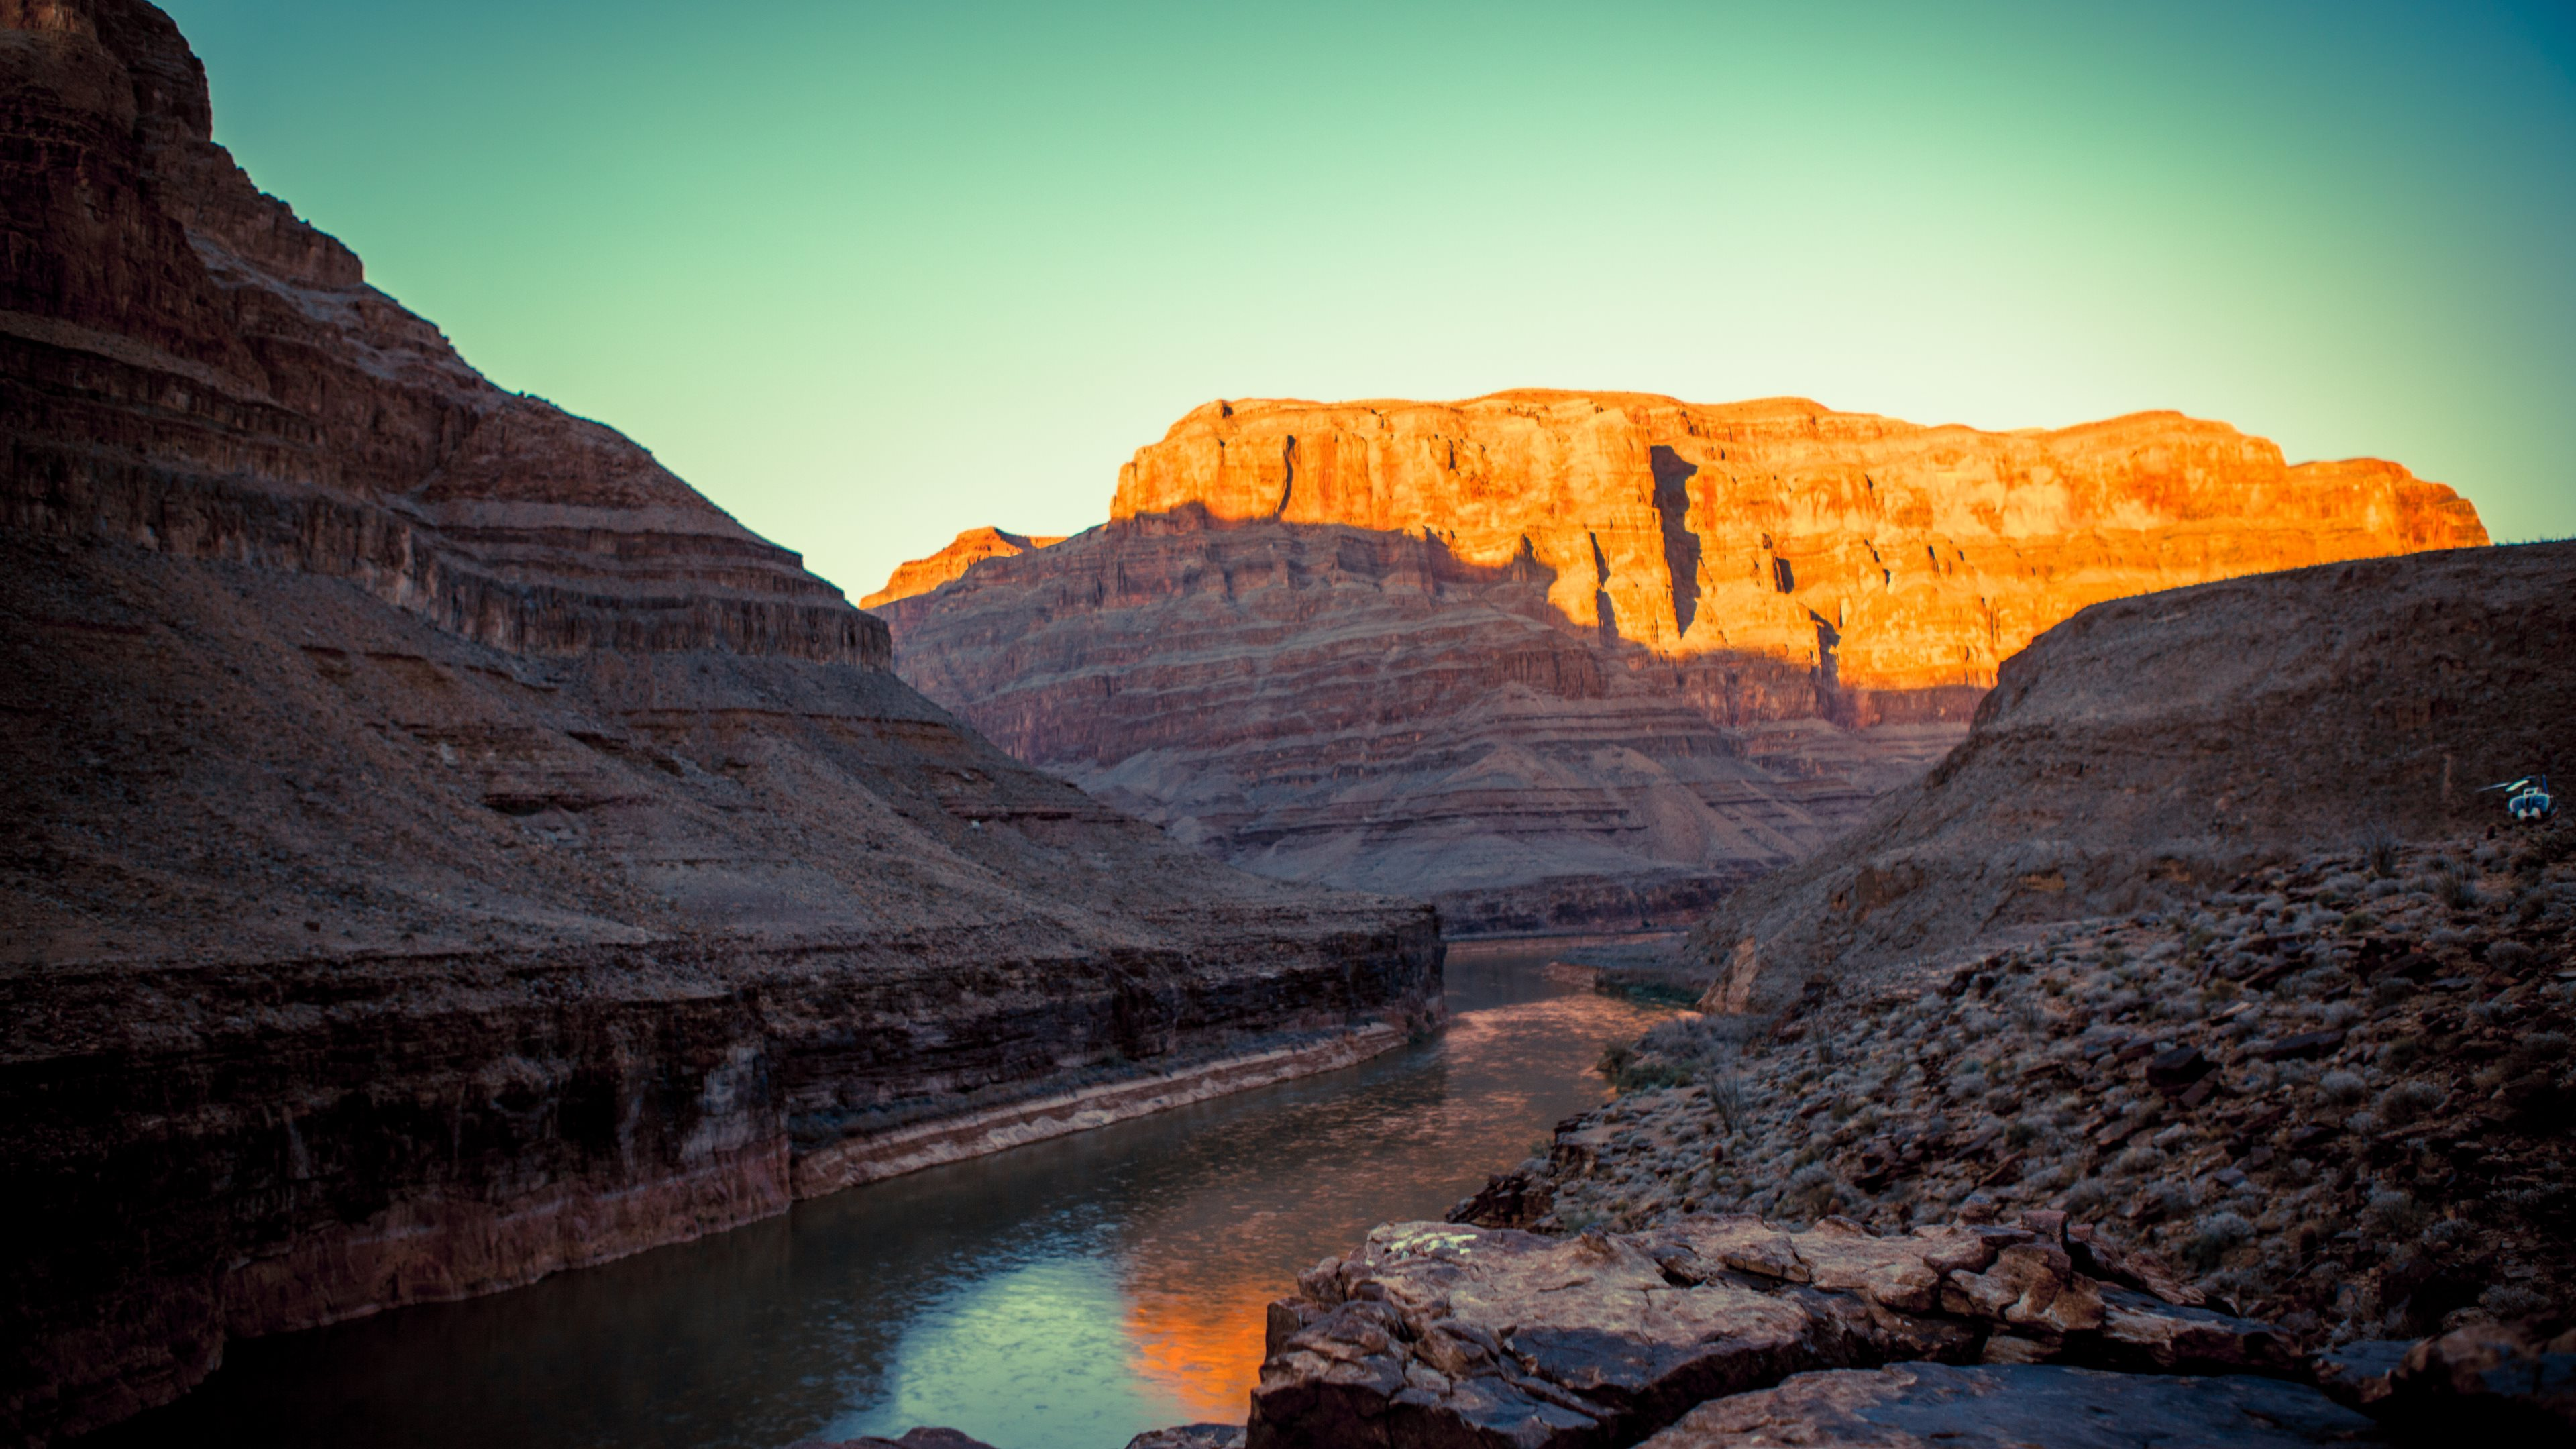 4k Background Wallpapers: Grand Canyon 4K Wallpaper